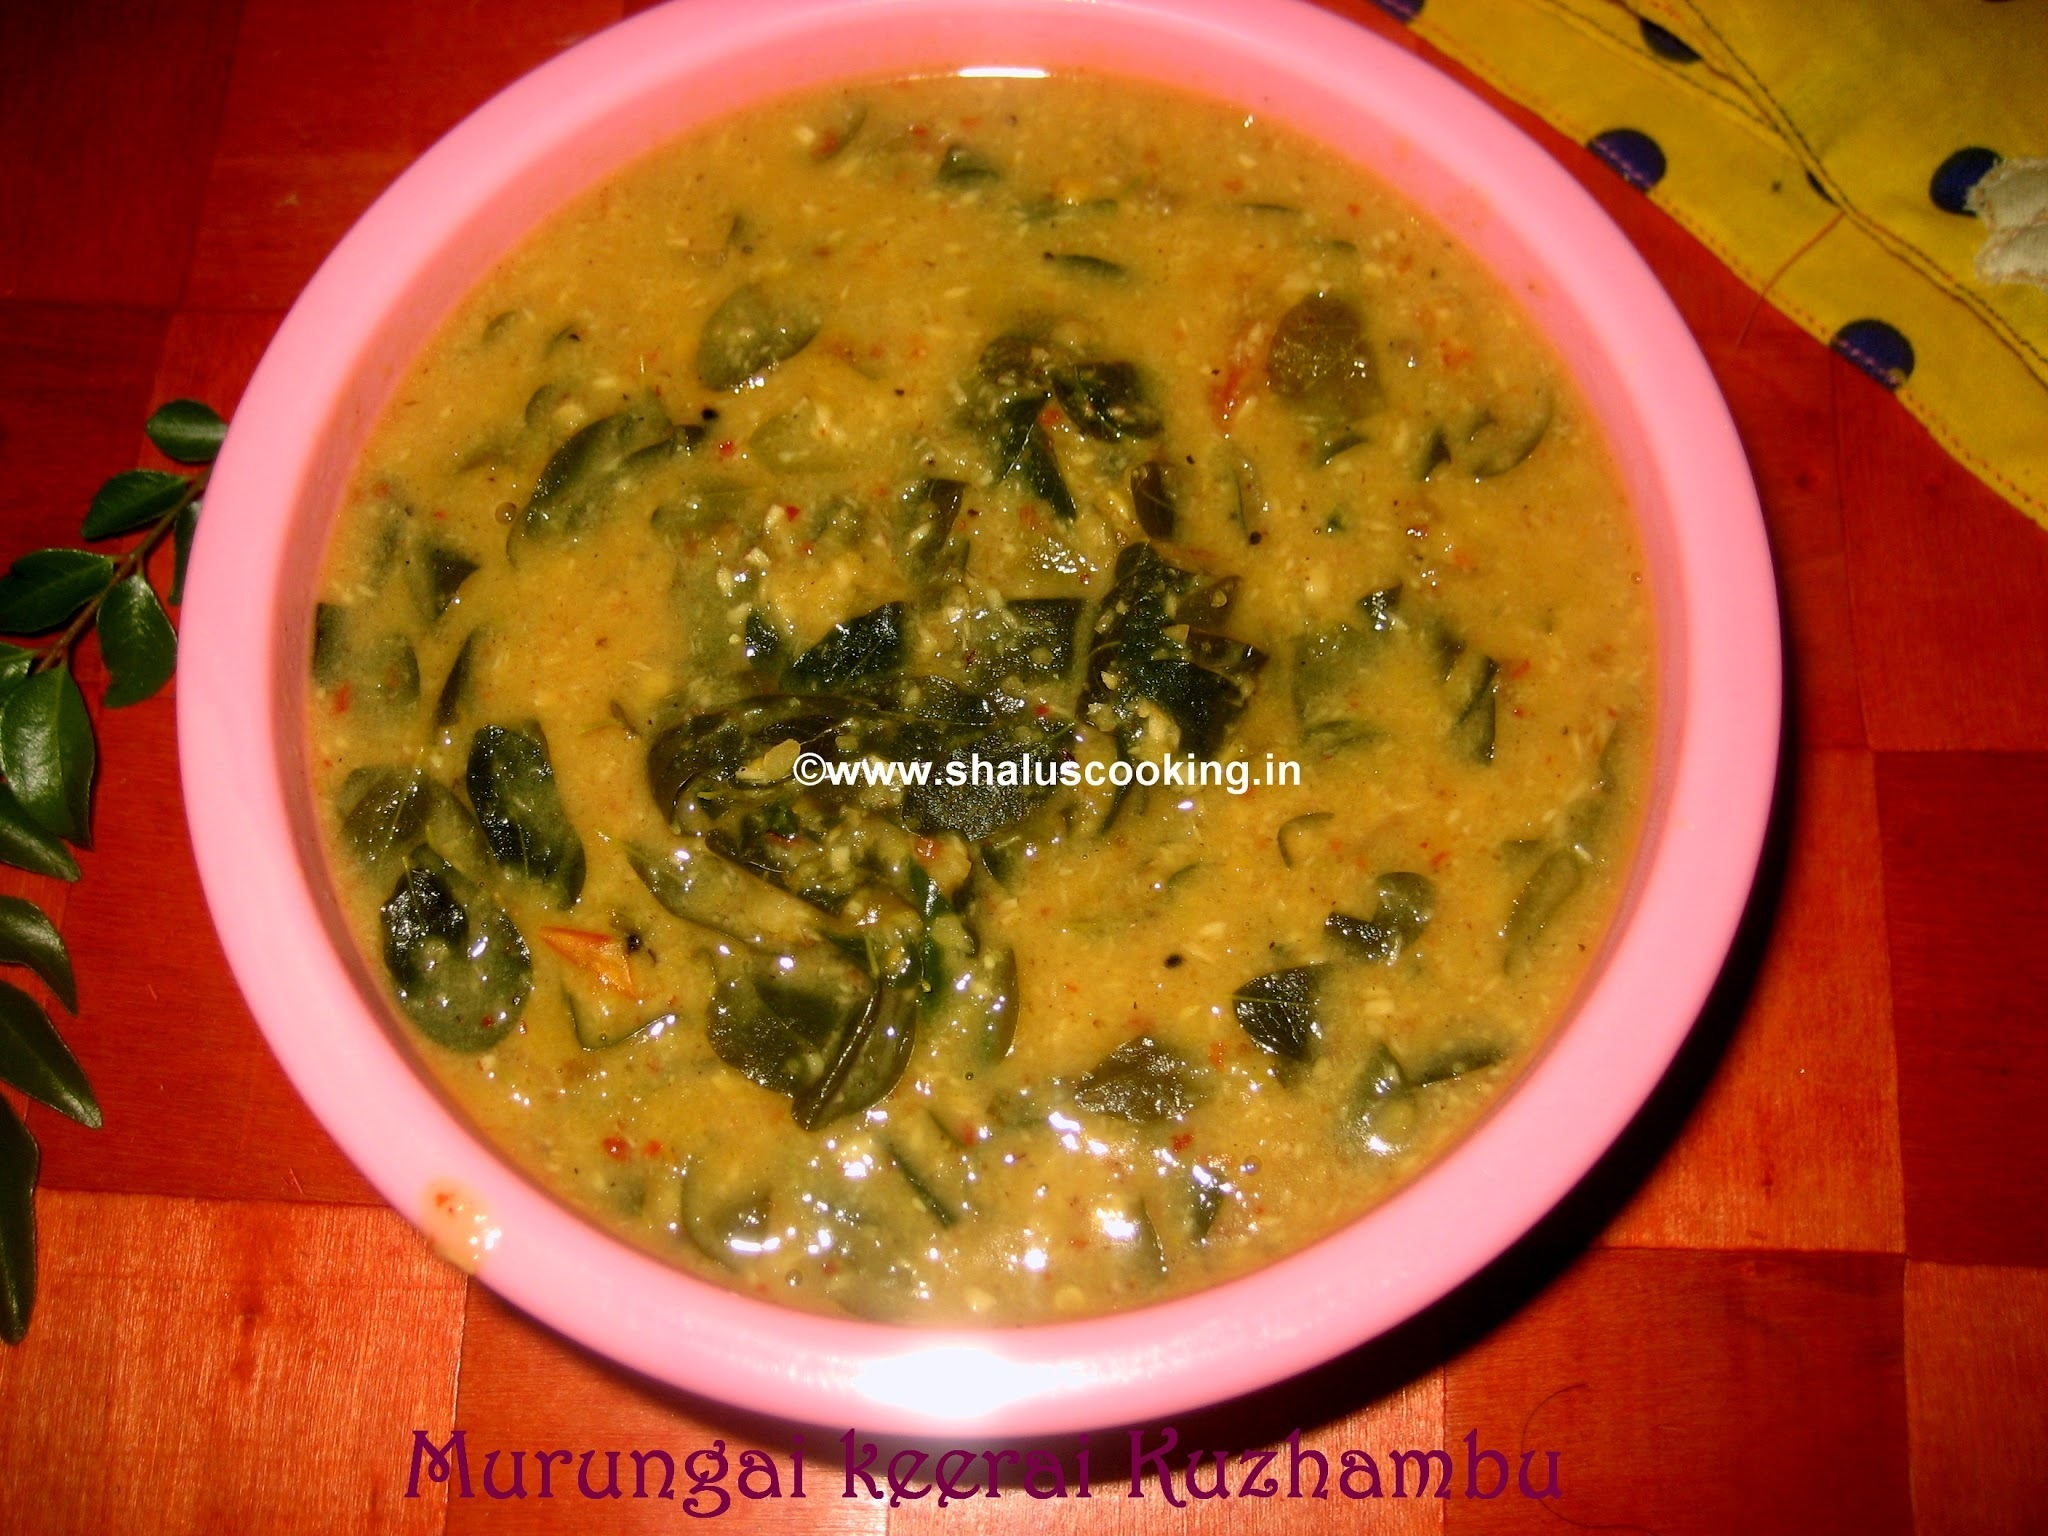 Murungai Keerai Kuzhambu - Drumstick Leaves Curry